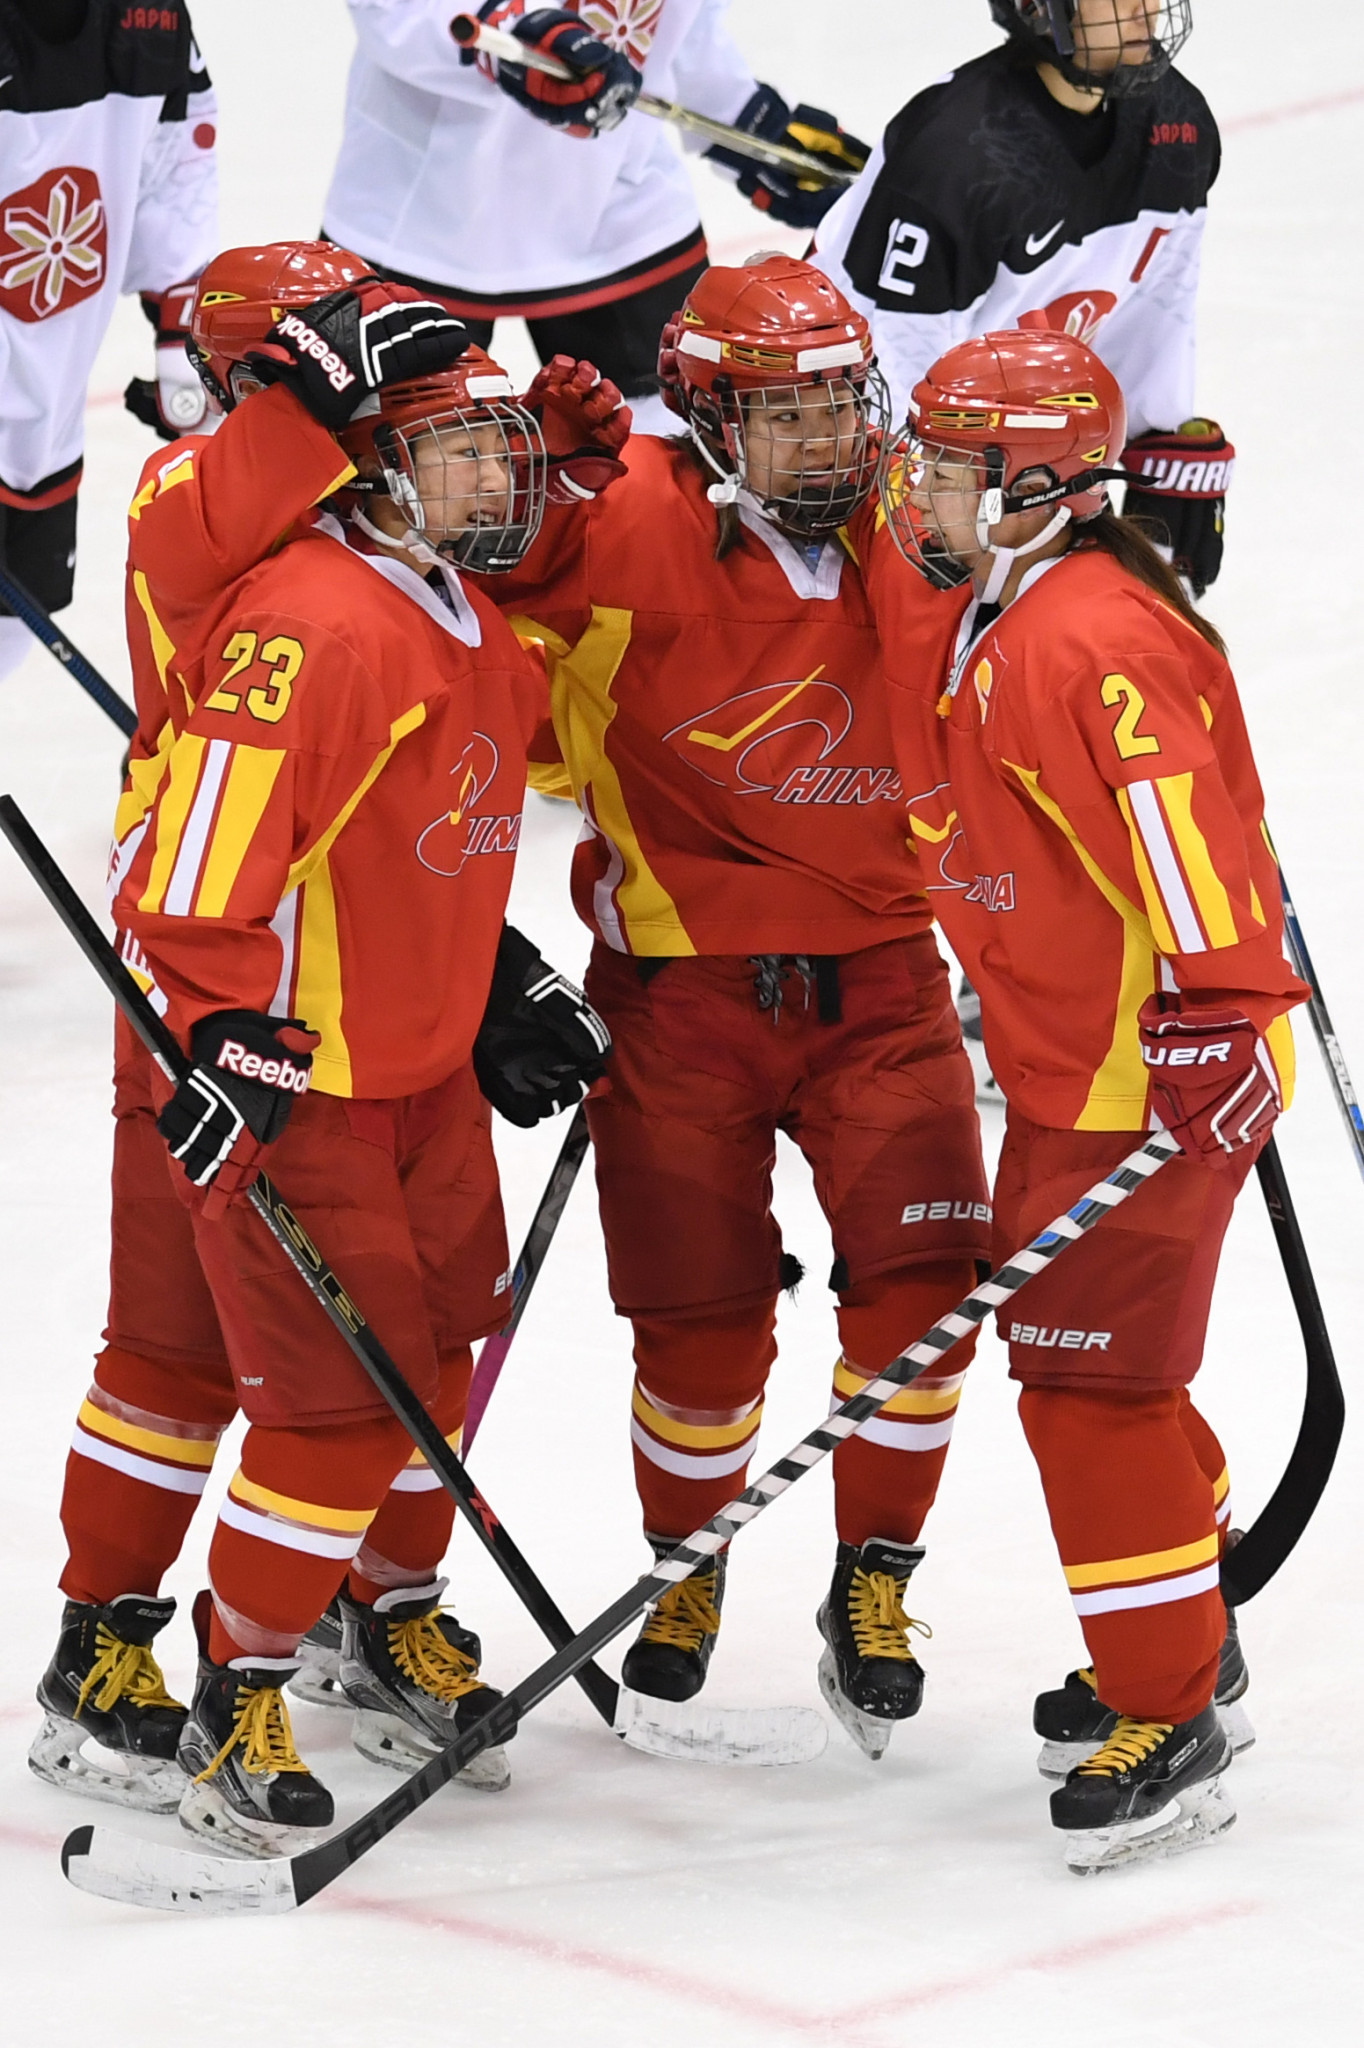 China is gearing up to host the Olympic ice hockey tournaments in 2022 ©Getty Images